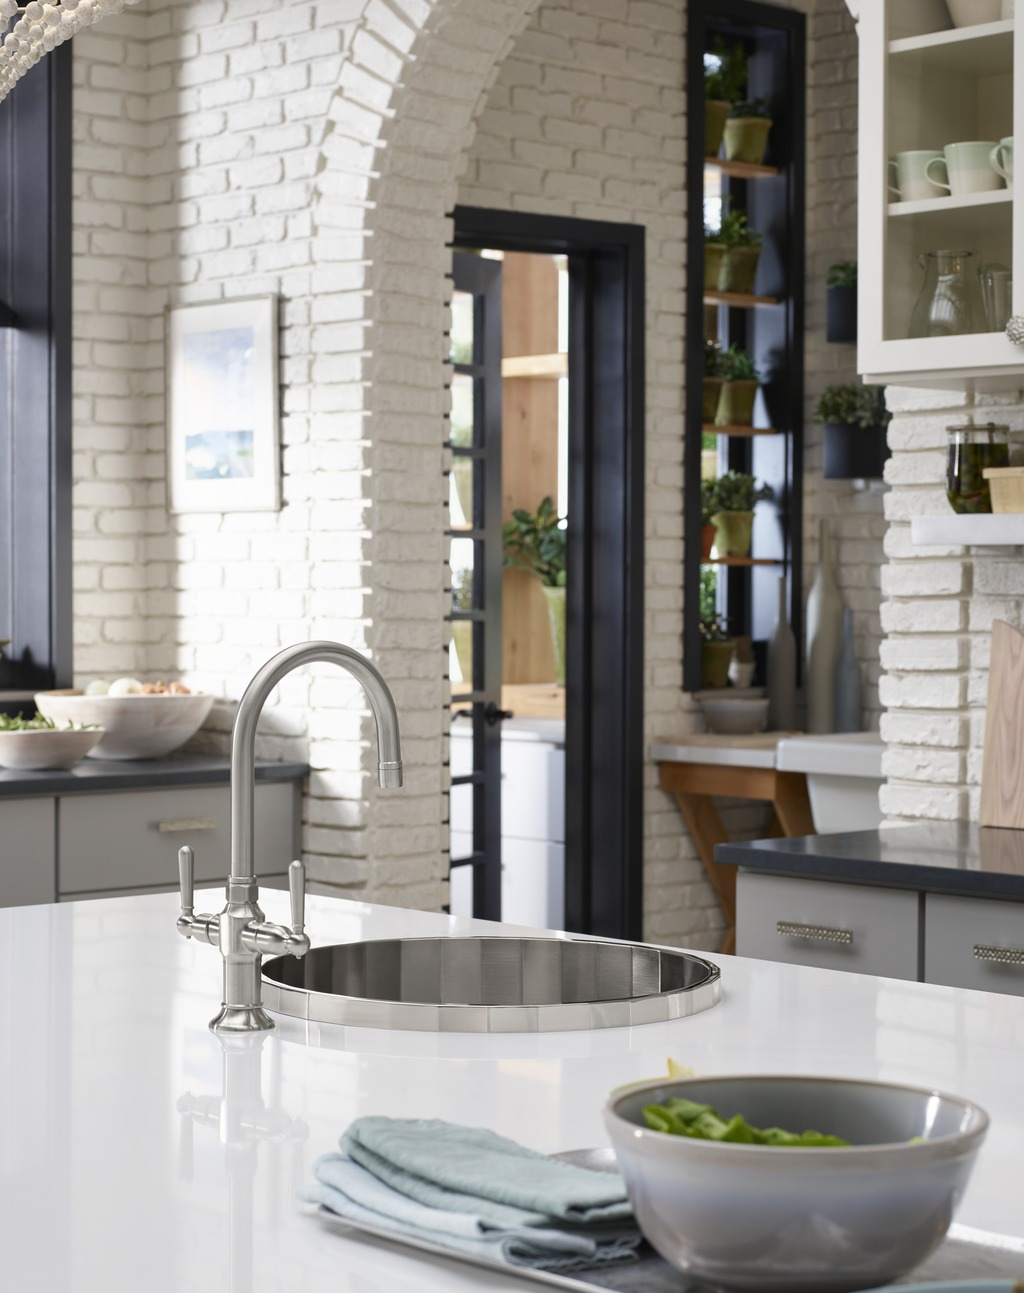 Silestone Iconic White countertop     Cloud Cover OC-25     HiRise Bar Sink Faucet     Brinx Bar Sink     Soft whites come together in the form of creamy quartz countertops and old-world brick to create an environment that's calm and inviting